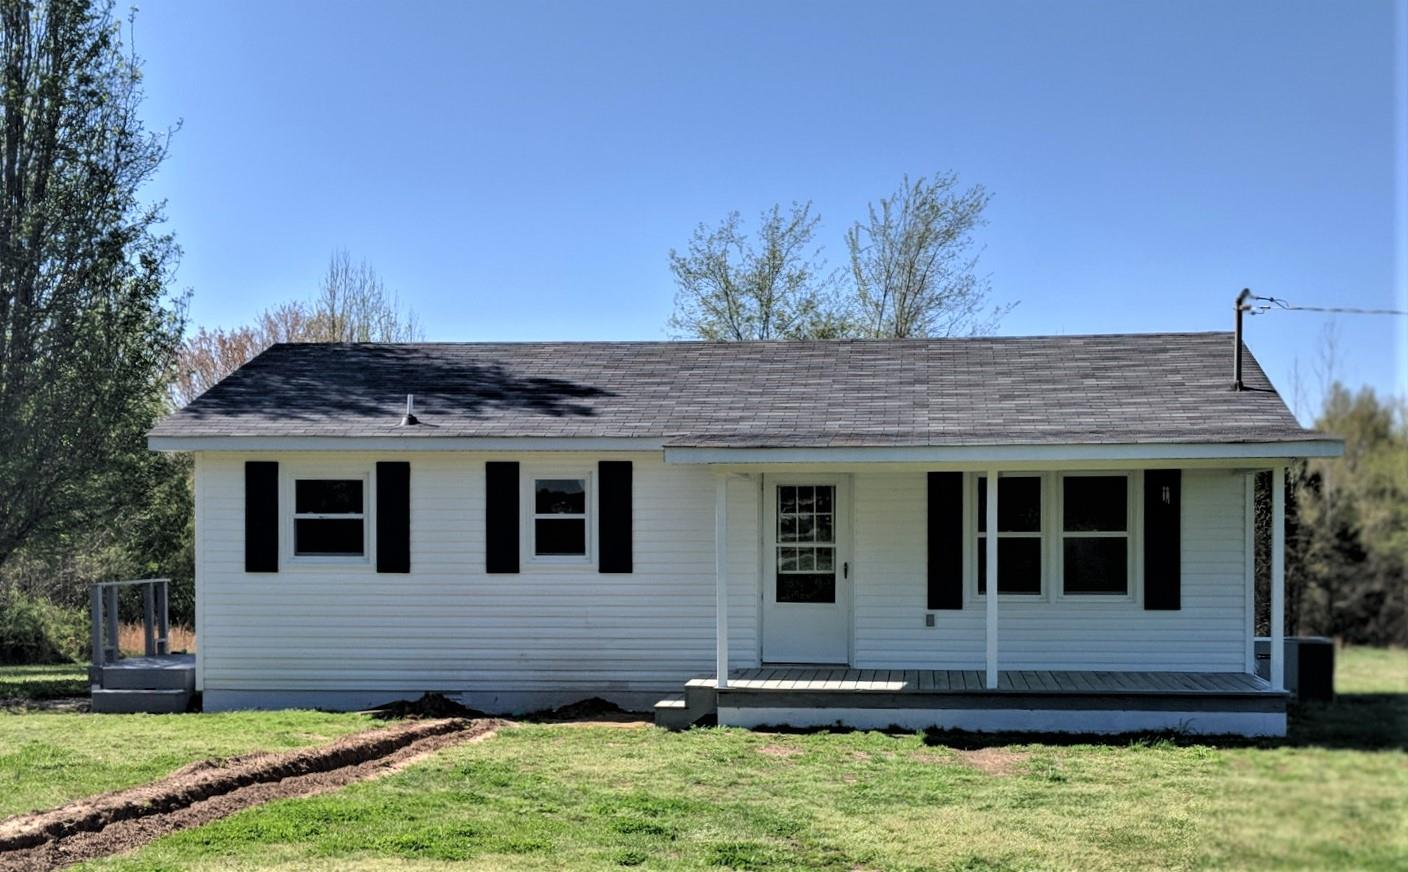 2420 HAWKERSMITH RD, Manchester, Tennessee